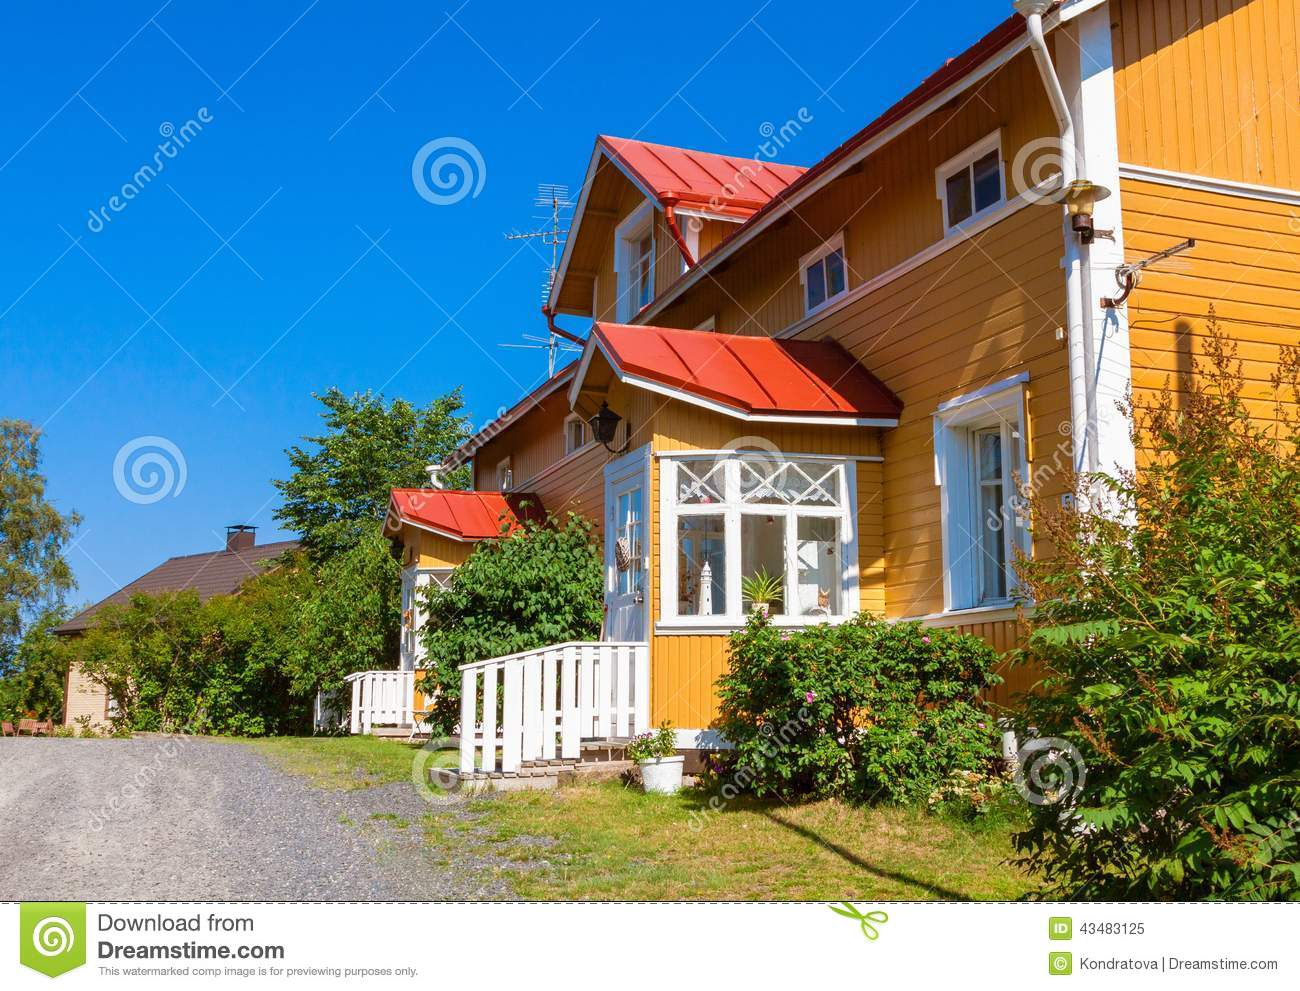 Wooden yellow house with red roof in scandinavian style for Yellow and red house